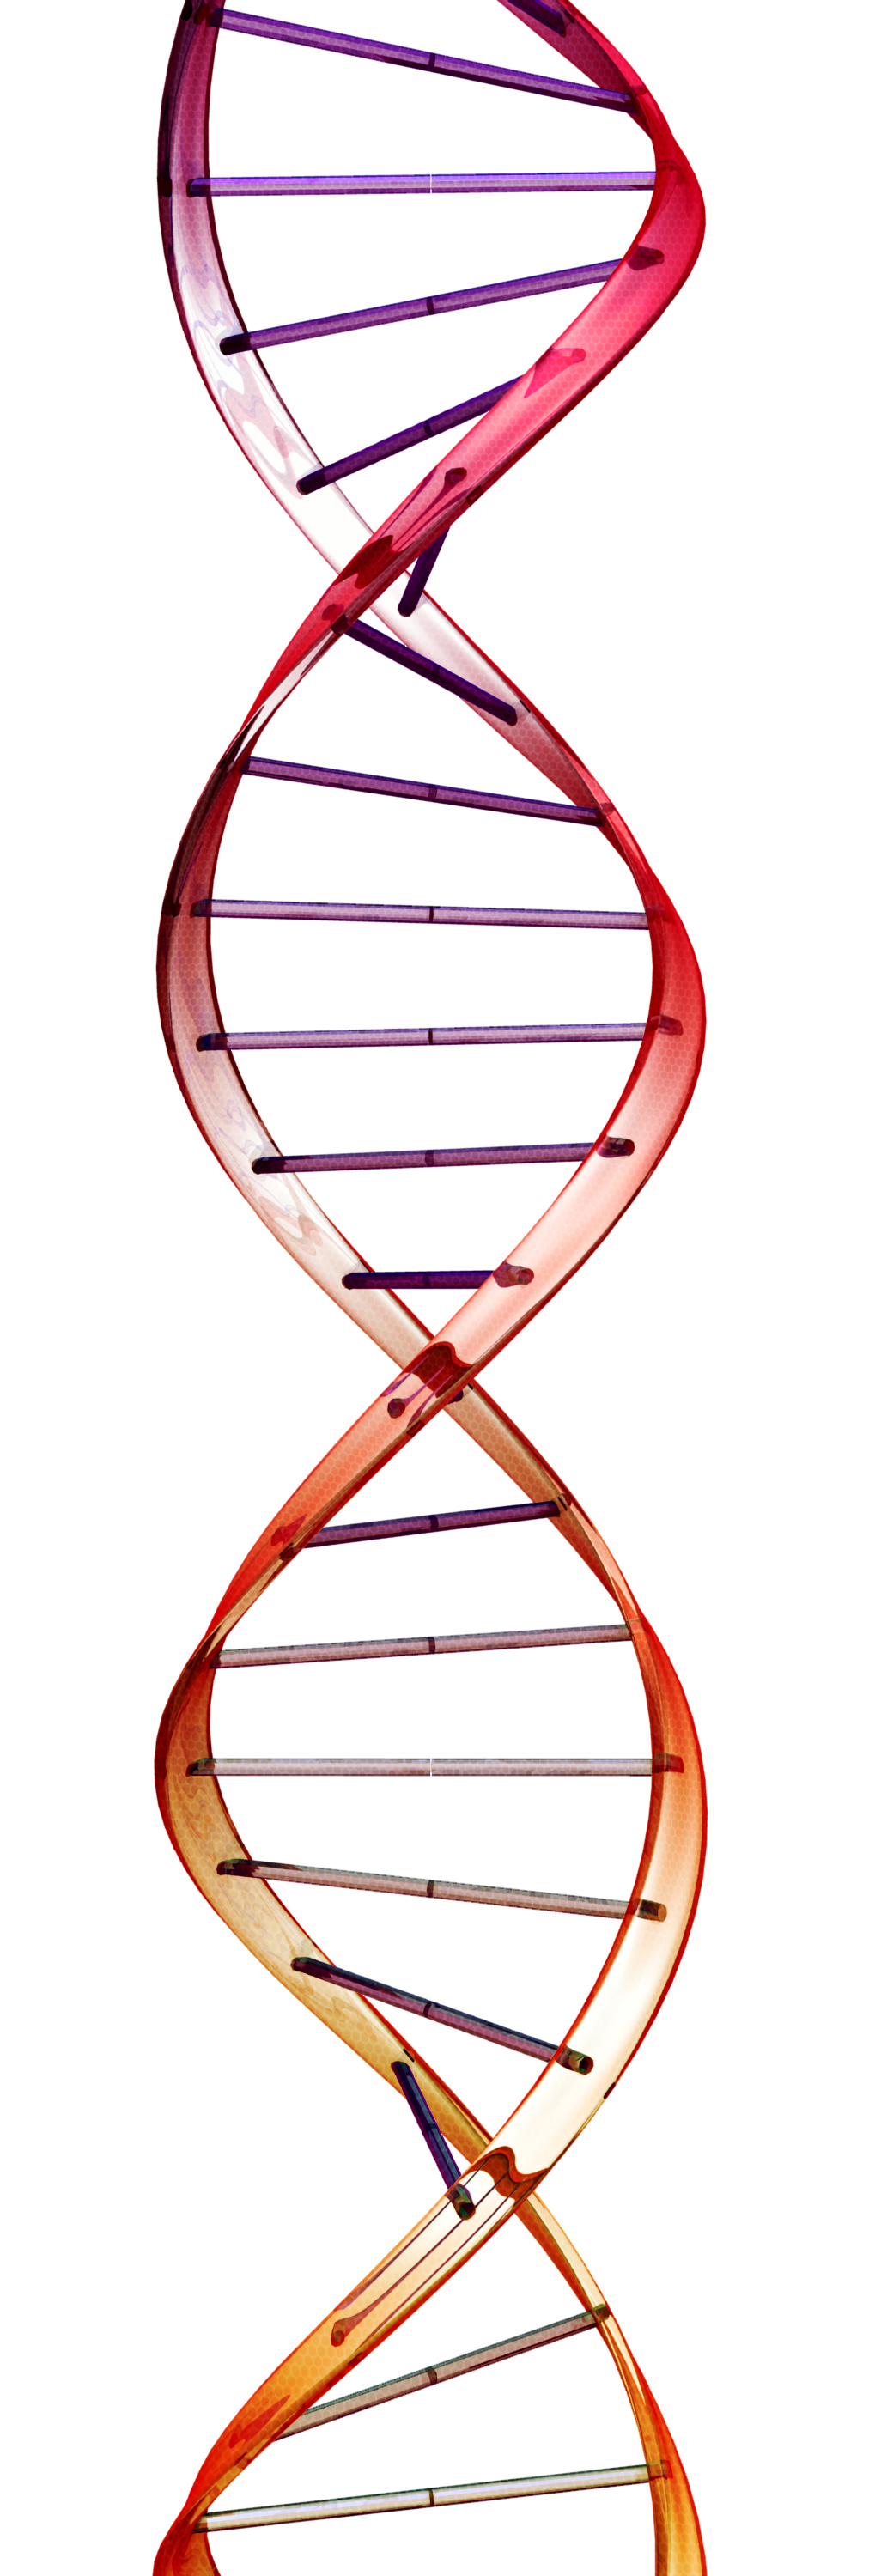 Double Helix Science And Belief